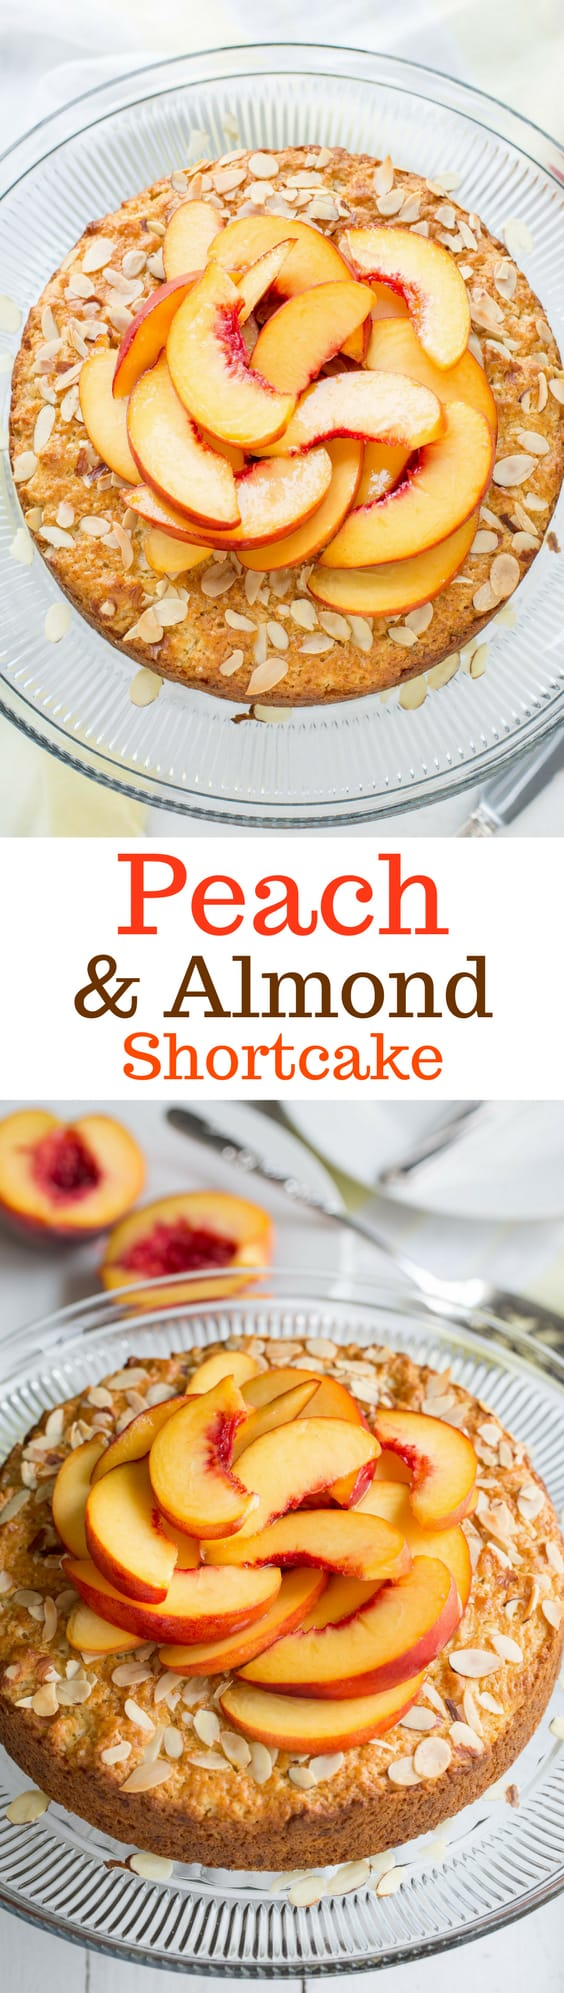 Peach & Almond Shortcake - A moist and lightly sweet cake made with almond paste for extra almond flavor. Top with sweetened whipped cream for a wonderful treat!  www.savingdessert.com